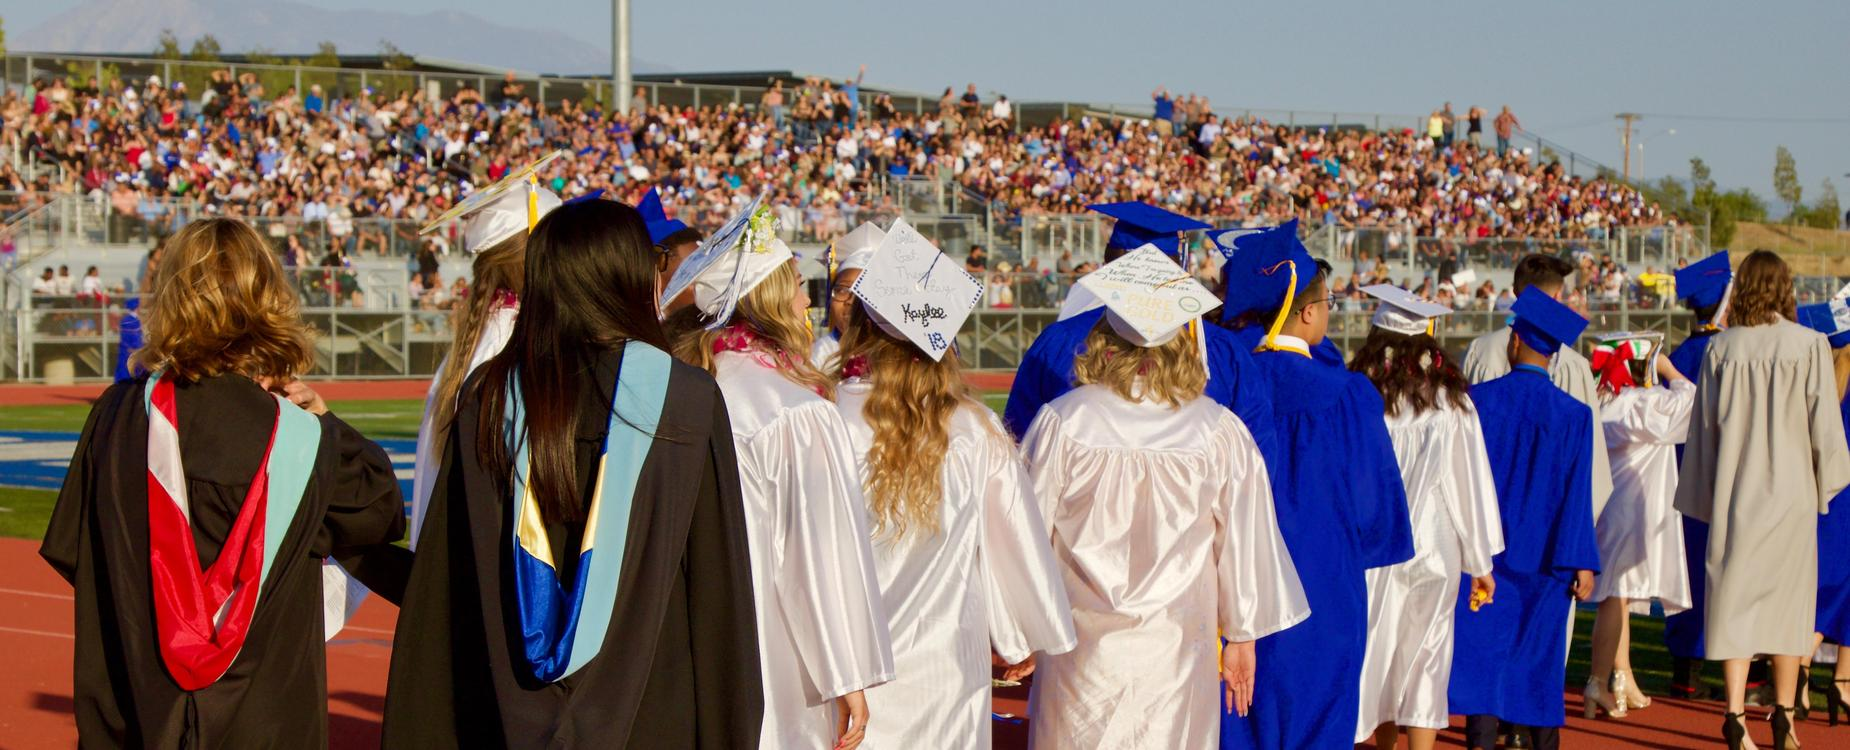 Students in cap and gowns